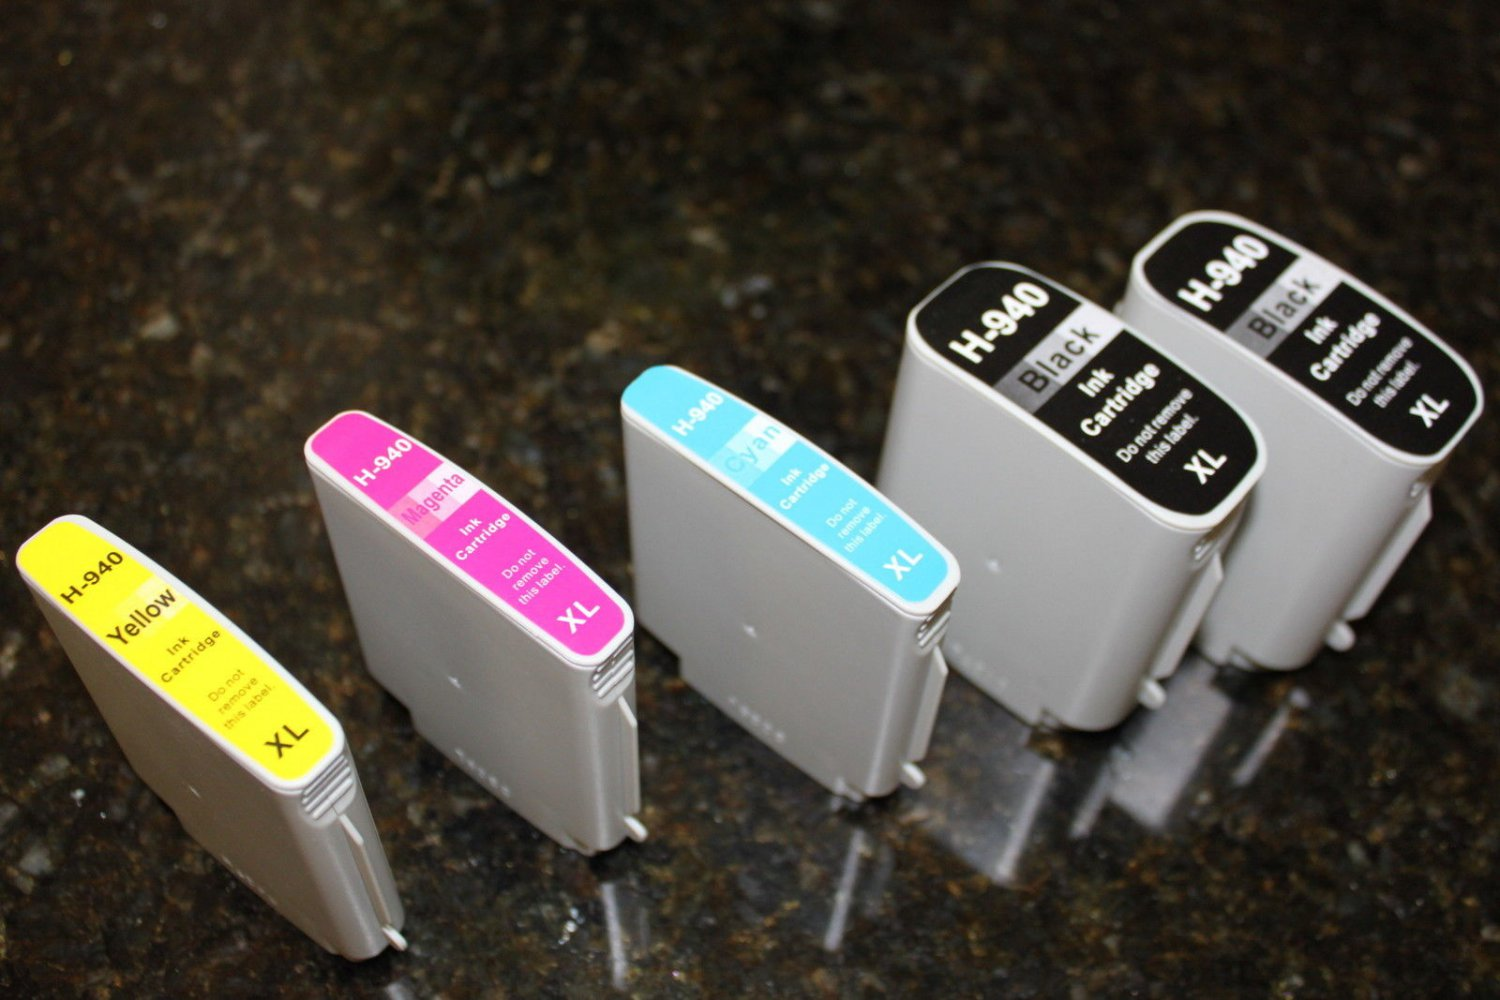 5 x Ink Cartridge XL 940 for HP Officejet Pro 8000 8500 8500A Series Printer